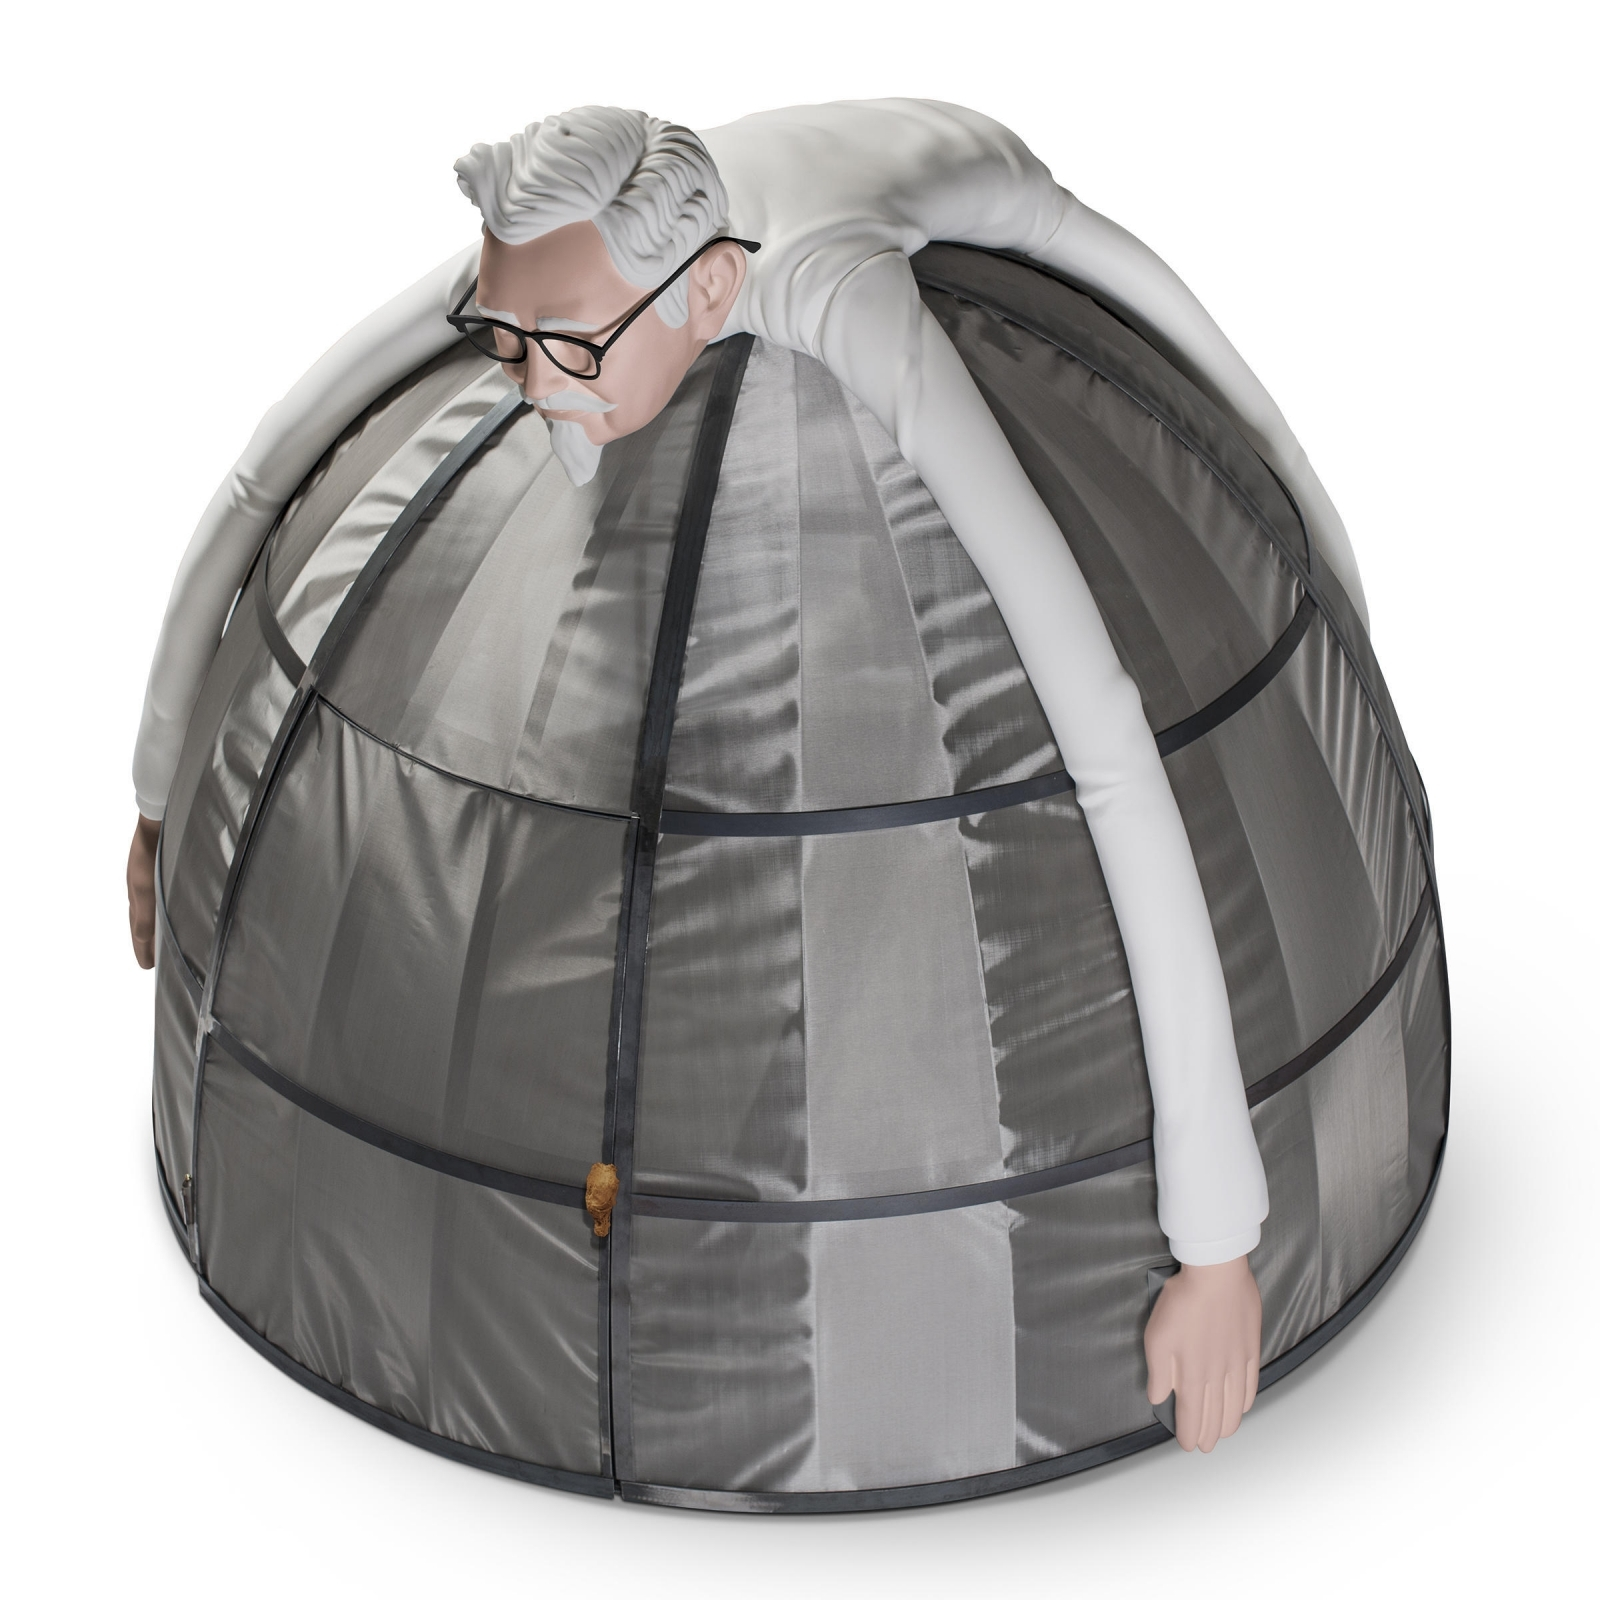 KFC selling 'Internet Escape Pod' for $10000